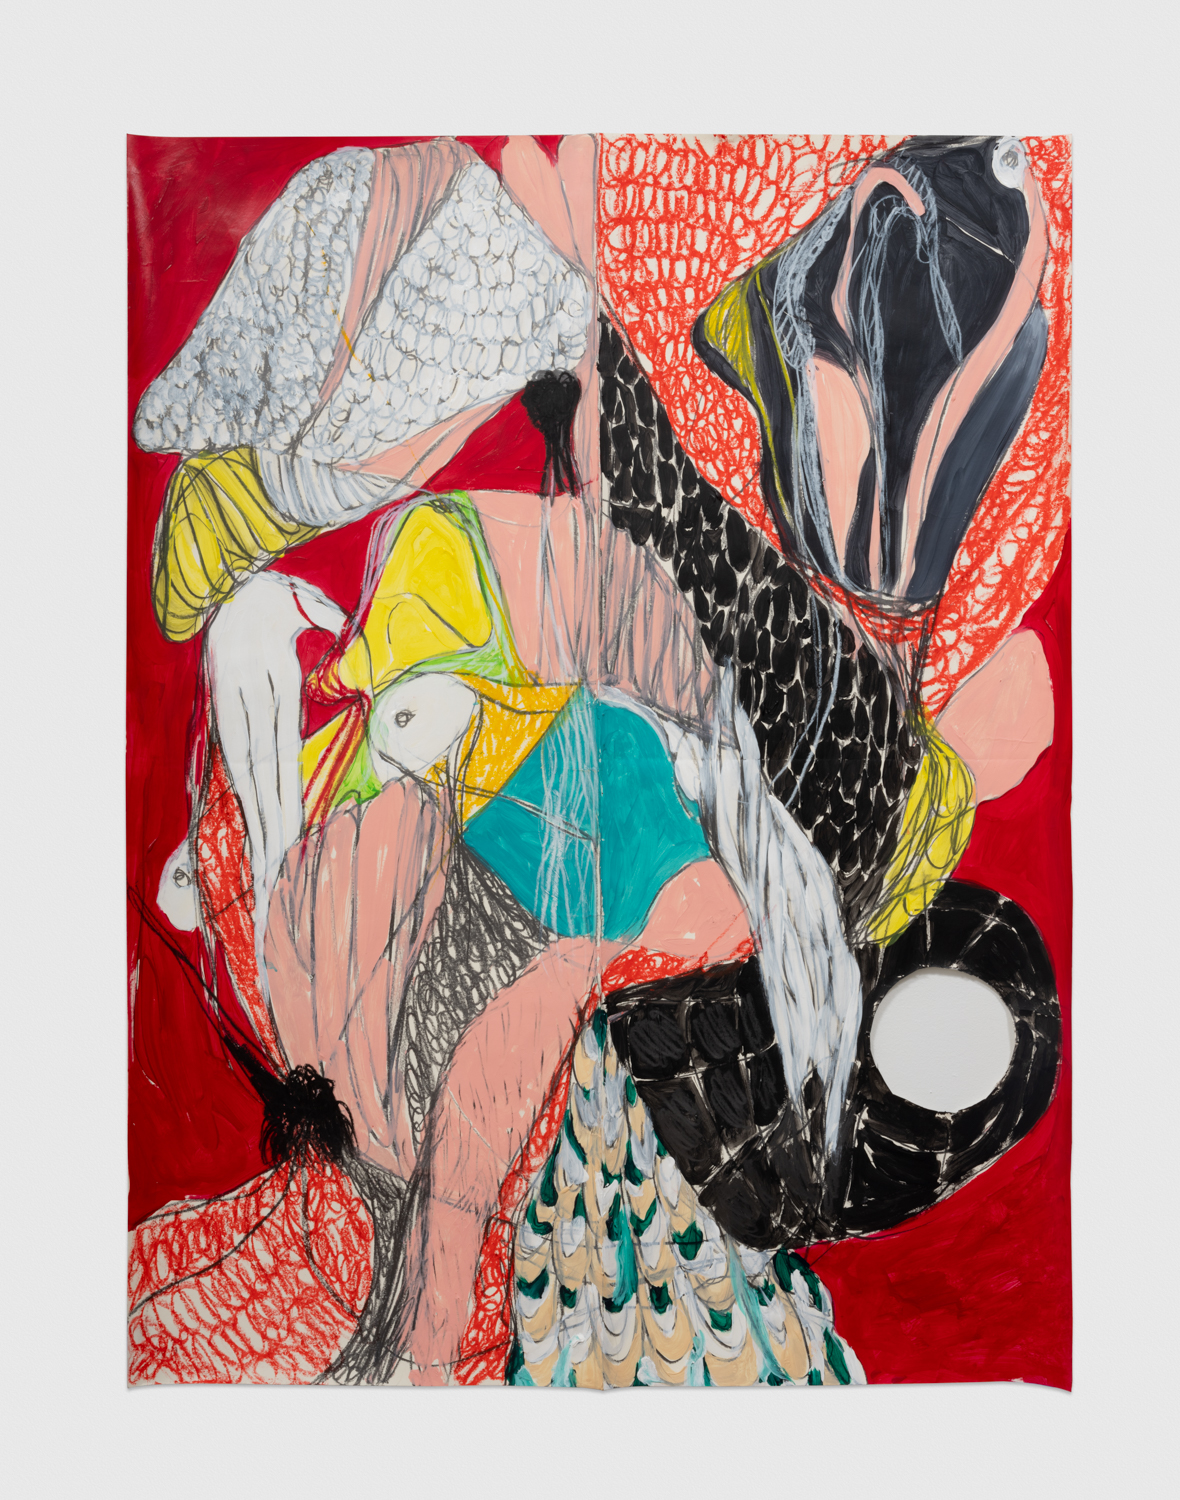 NaotakaHiro Untitled (Perching, Red), 2018 Acrylic, graphite and grease pencil on paper 42h x 32w in NaoH019